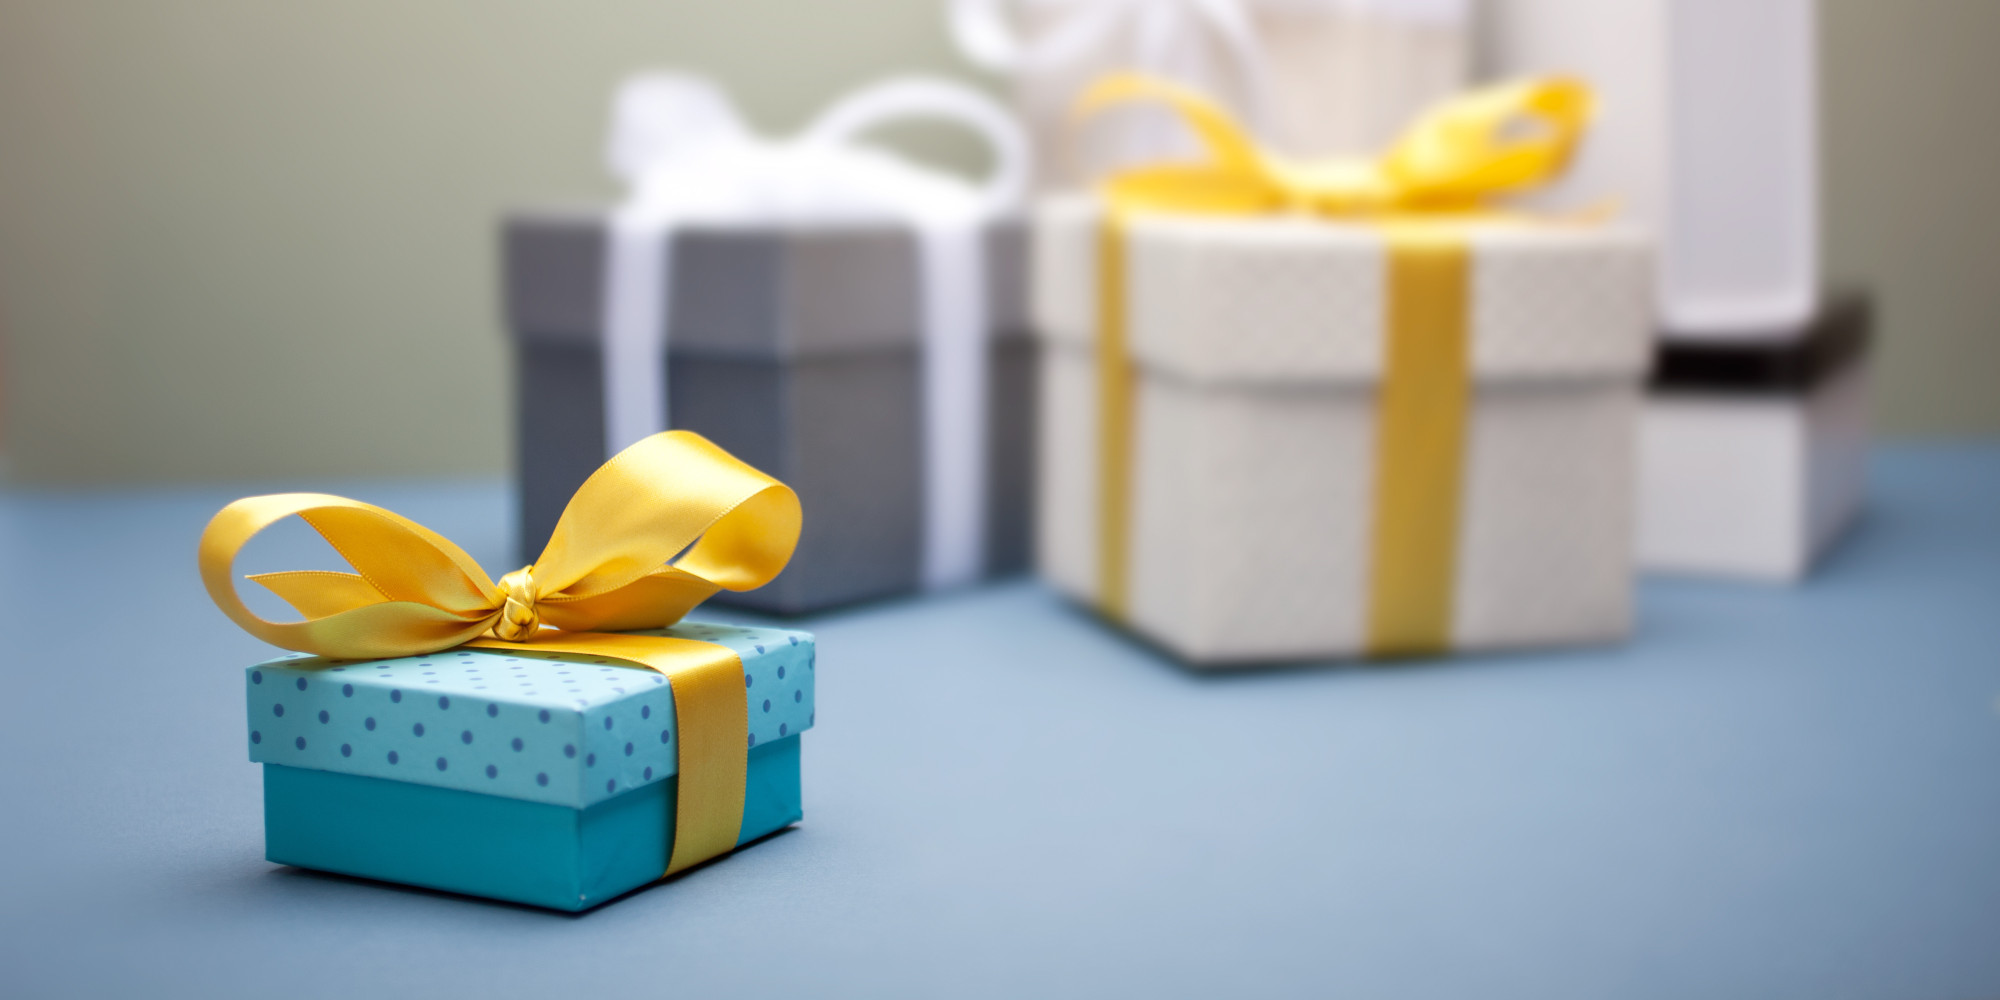 Make Christmas Memorable With Special Christmas Gift Ideas